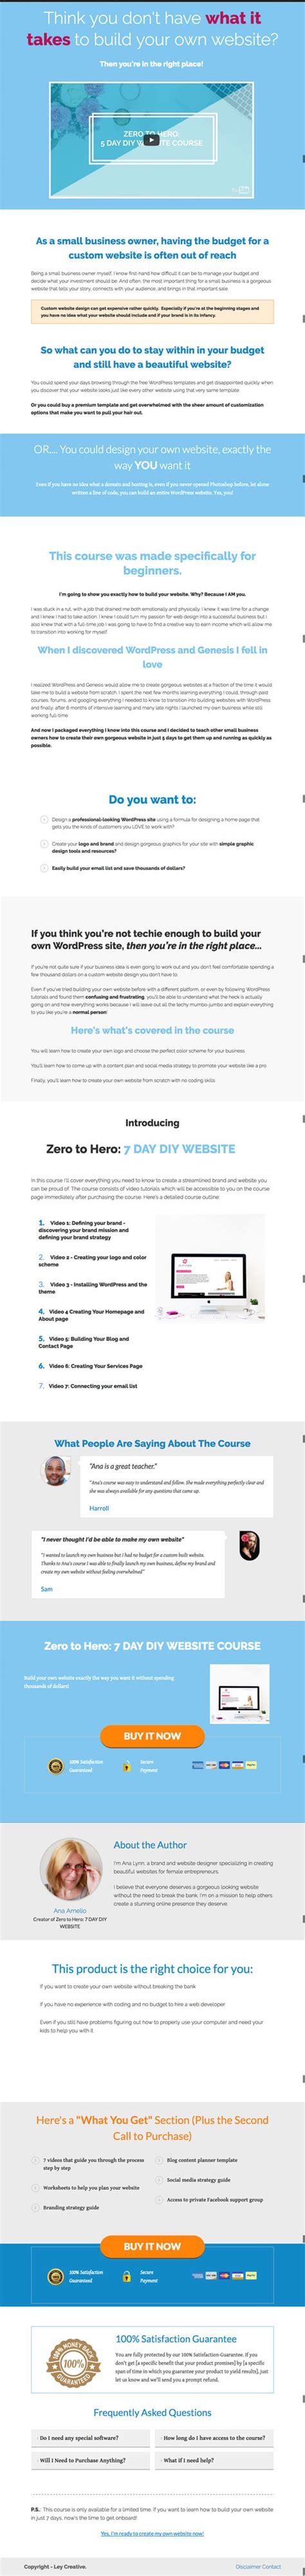 use the full web version of edmodo to access the quiz how to build a sales page in wordpress with no design